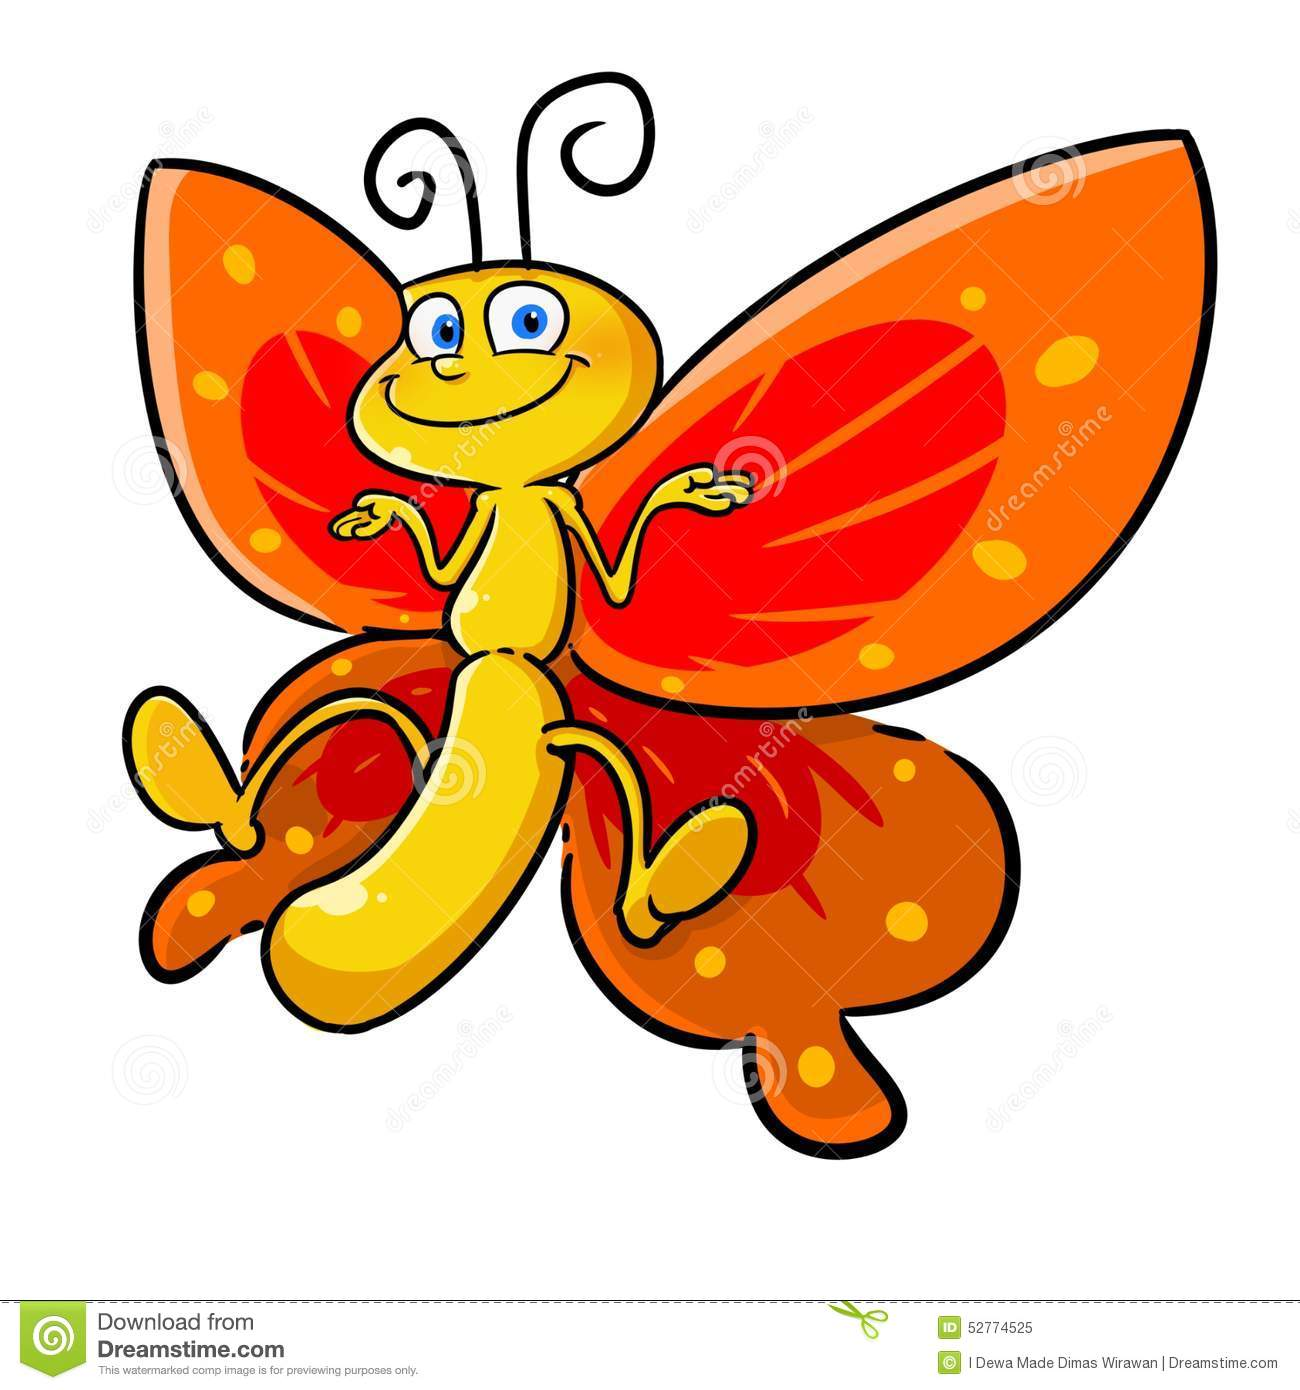 animated butterfly clipart free - photo #45